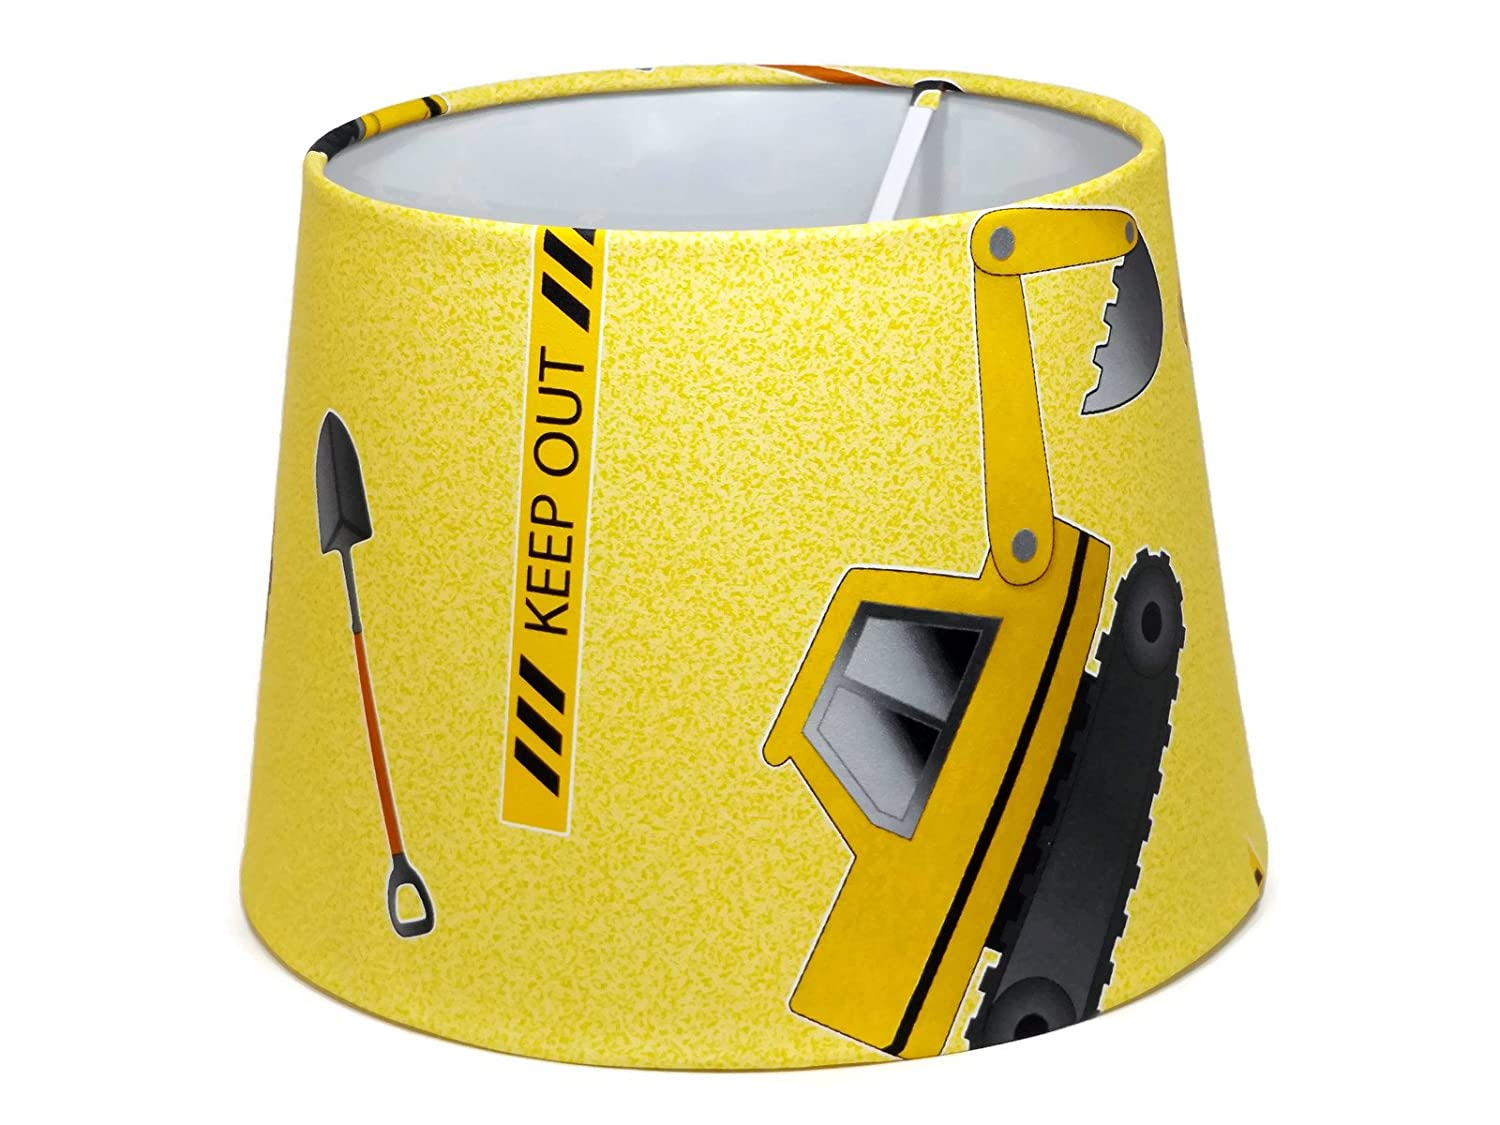 Digger Construction Lampshade or Ceiling Light Shade 95 DUAL